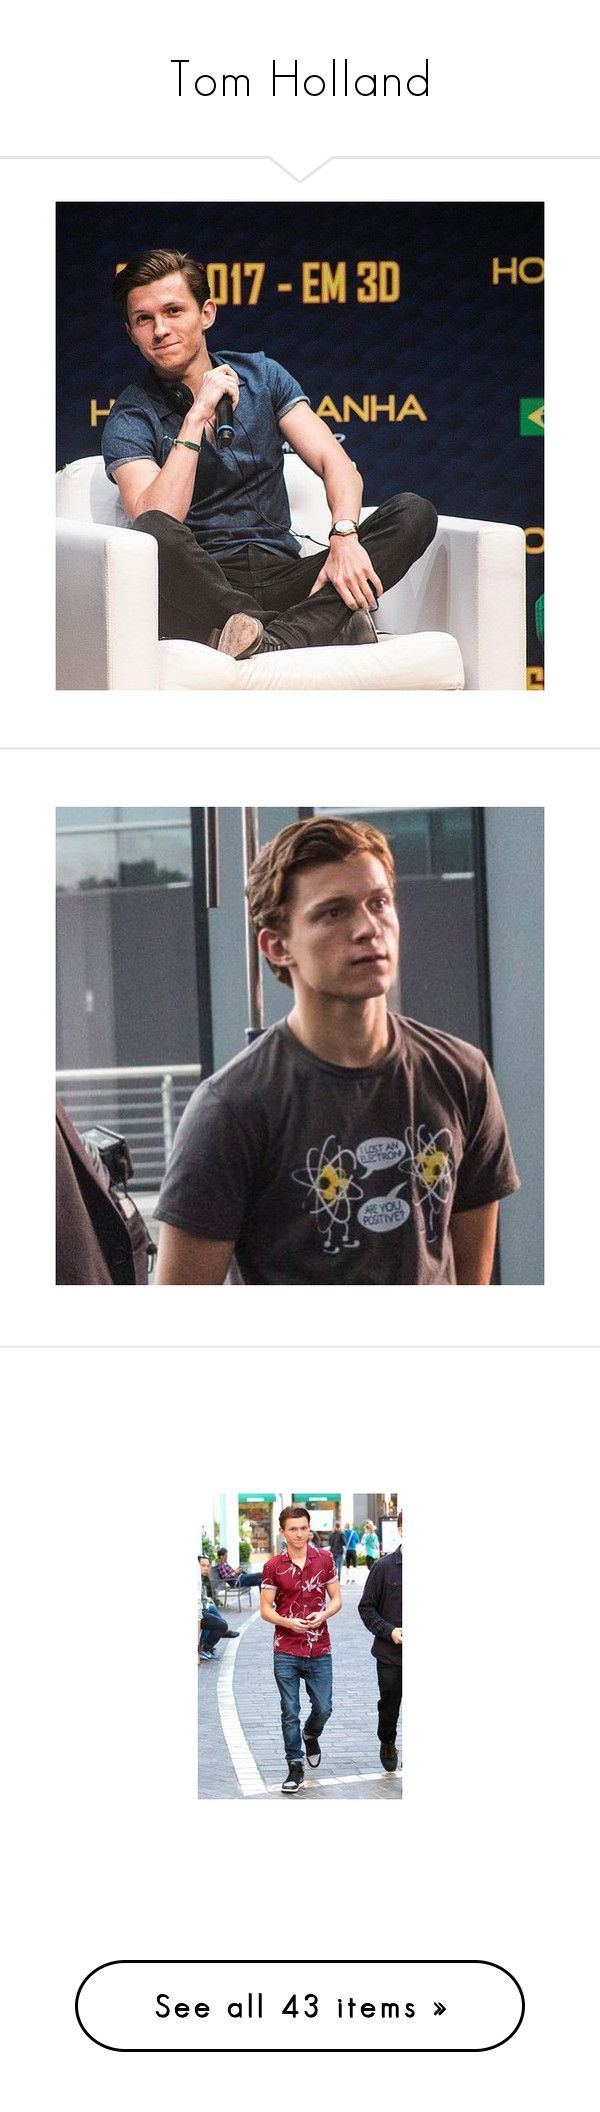 """""""Tom Holland"""" by dreambig98 ❤ liked on Polyvore featuring spiderman, pictures, marvel, superheroes, tom holland, jewelry and earrings"""